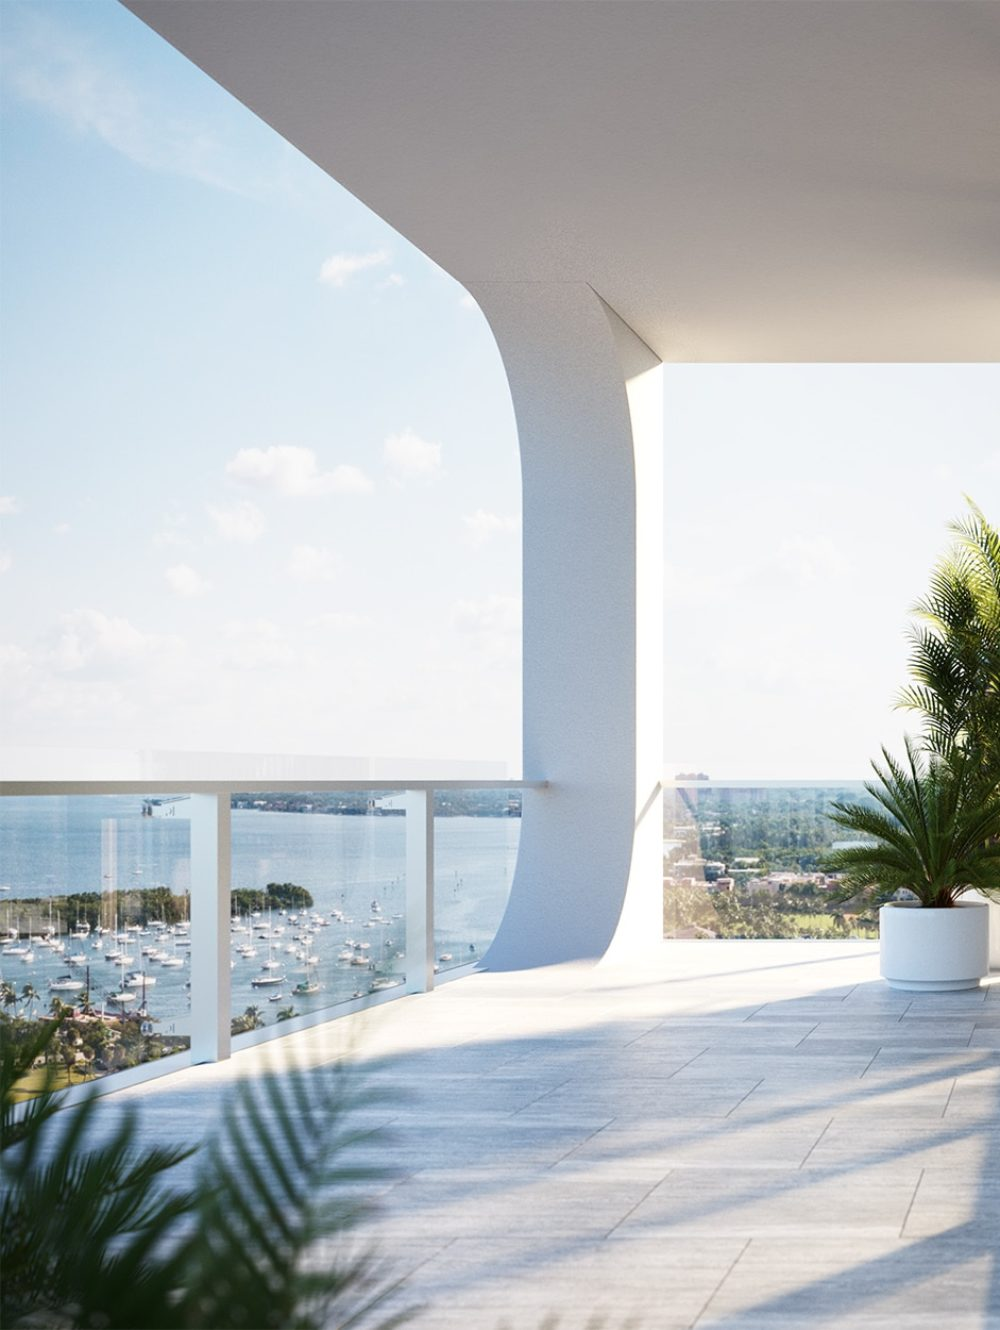 Terrace and living room at Mr. C Residences in Miami. Floor-to-ceiling windows with access to balcony from the living room.